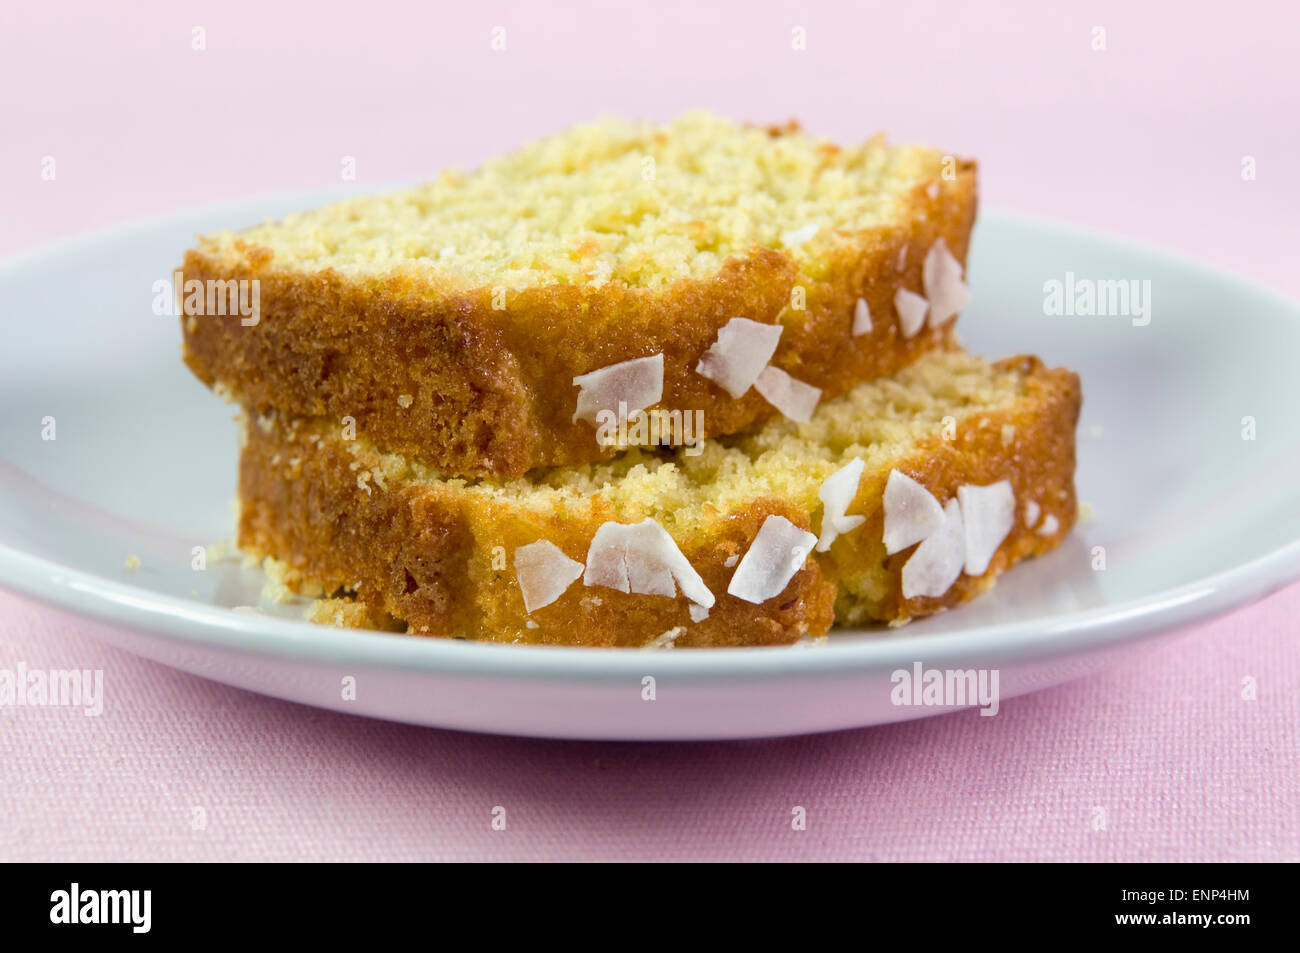 Sliced home made coconut cake on plate against a pink background - Stock Image